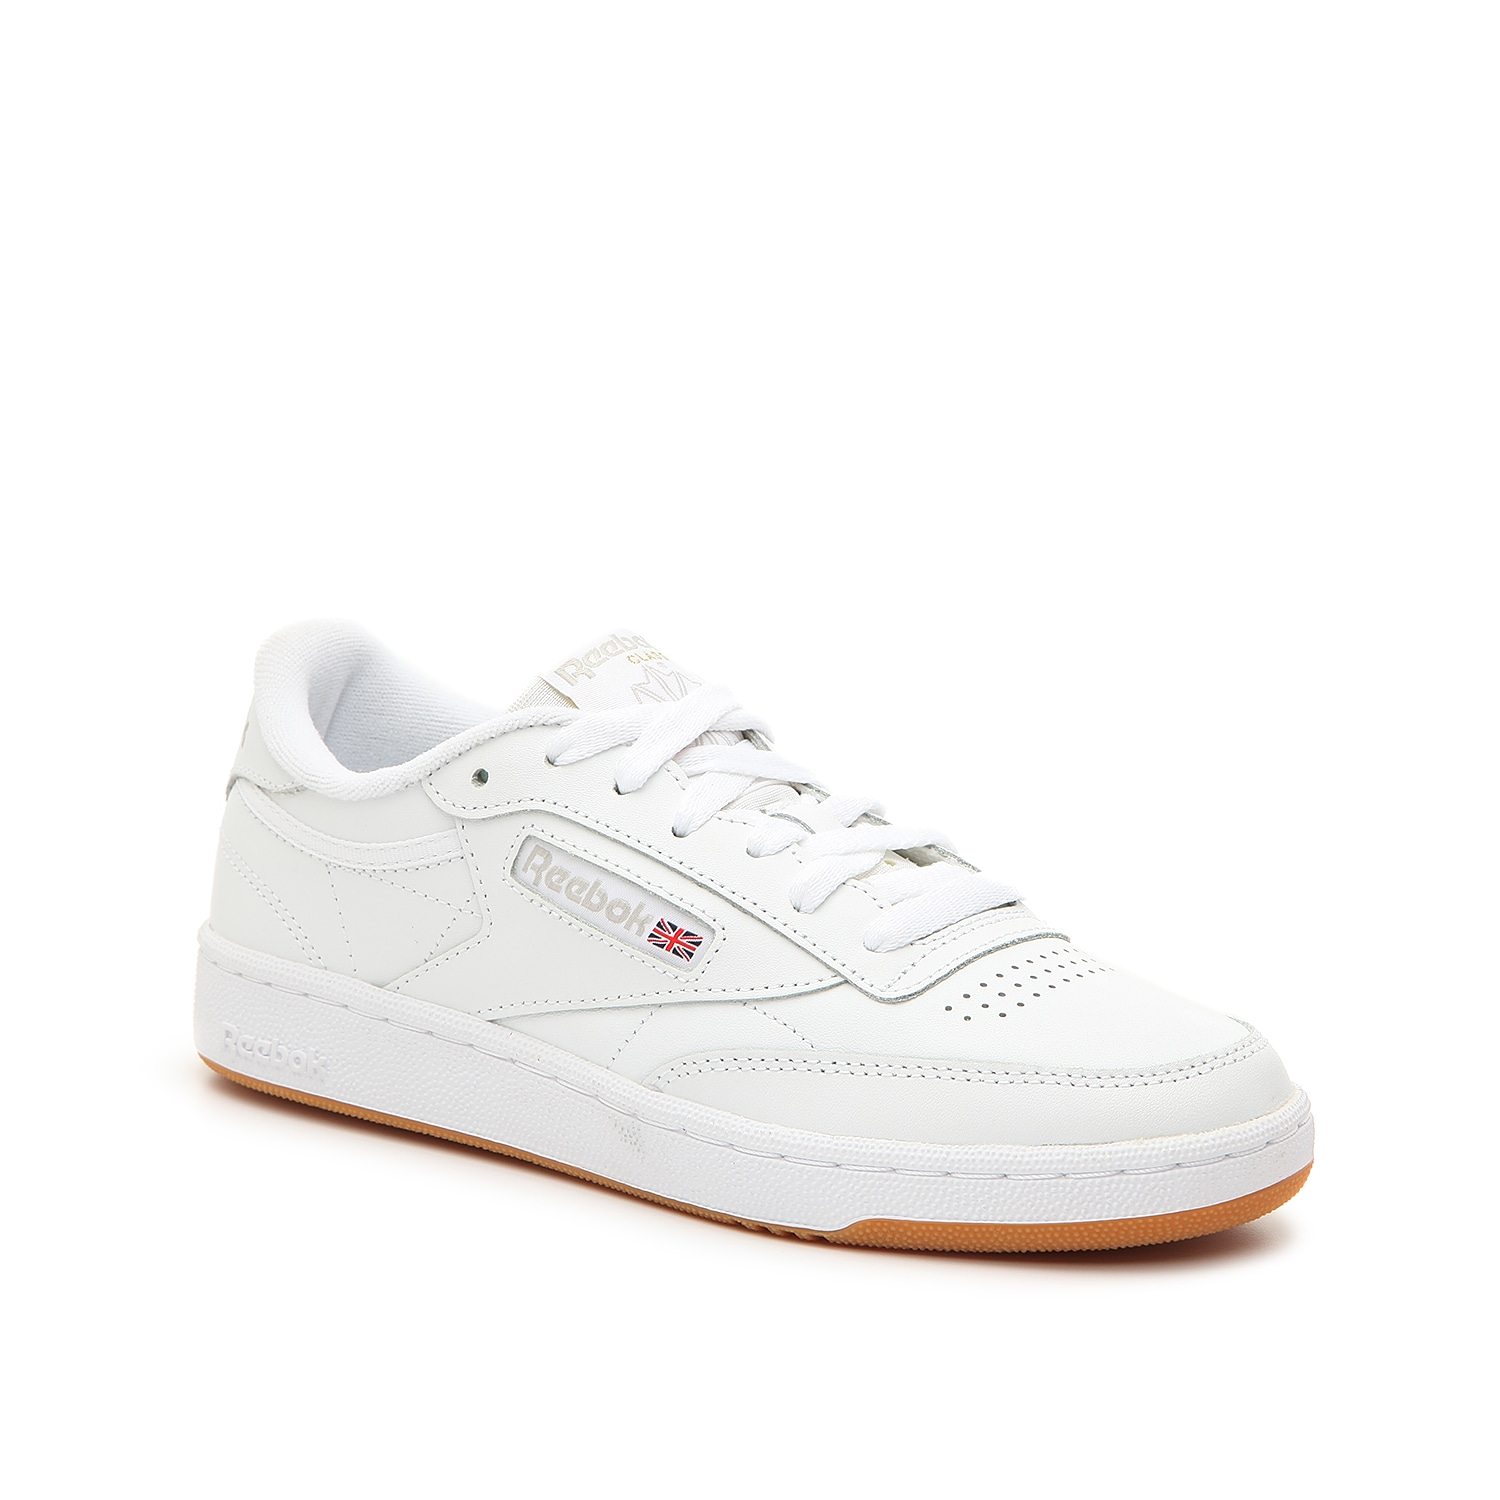 You\\\'ll feel all the street style vibes when wearing the Club sneaker from Reebok. This women\\\'s low-top features a leather finish and the perfect athleisure look you can pair with anything from jeans to t-shirt dresses!